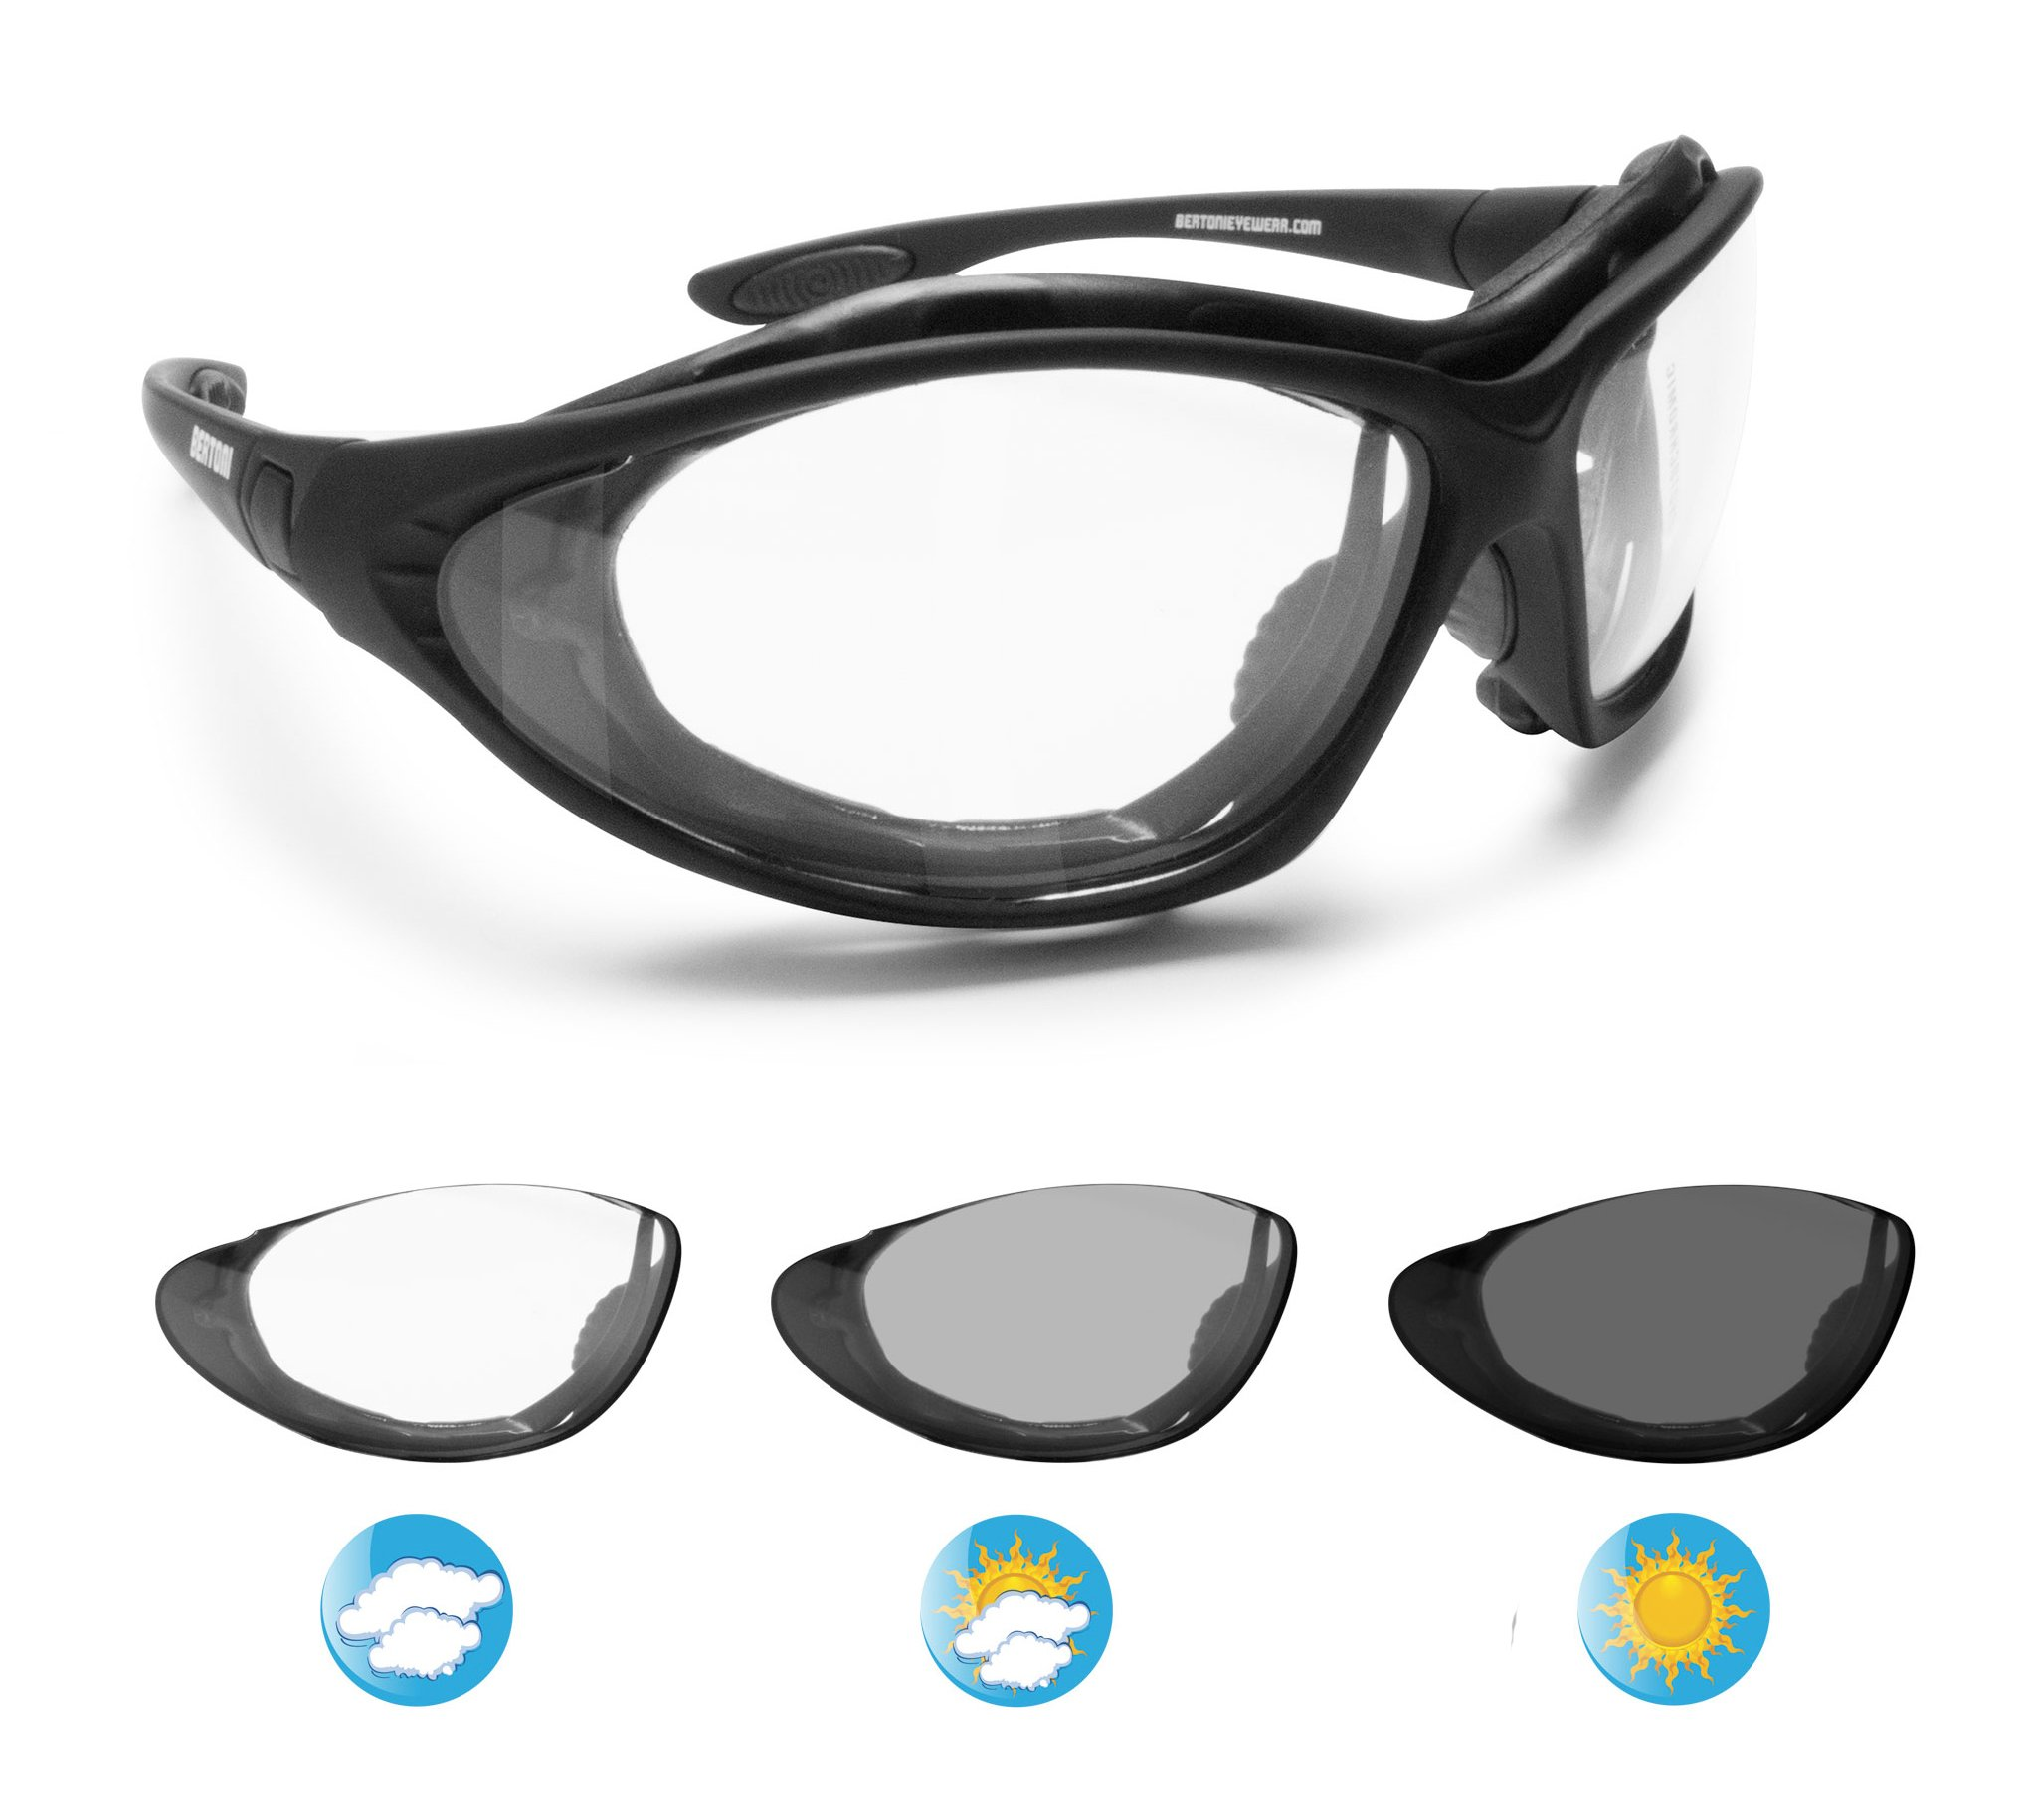 Bertoni Motorcycle Goggles Photochromic Antifog Lens - Interchangeable Arms and Elastic Strap by Italy F333A Motorbike Sunsensor Riding Padded Glasses